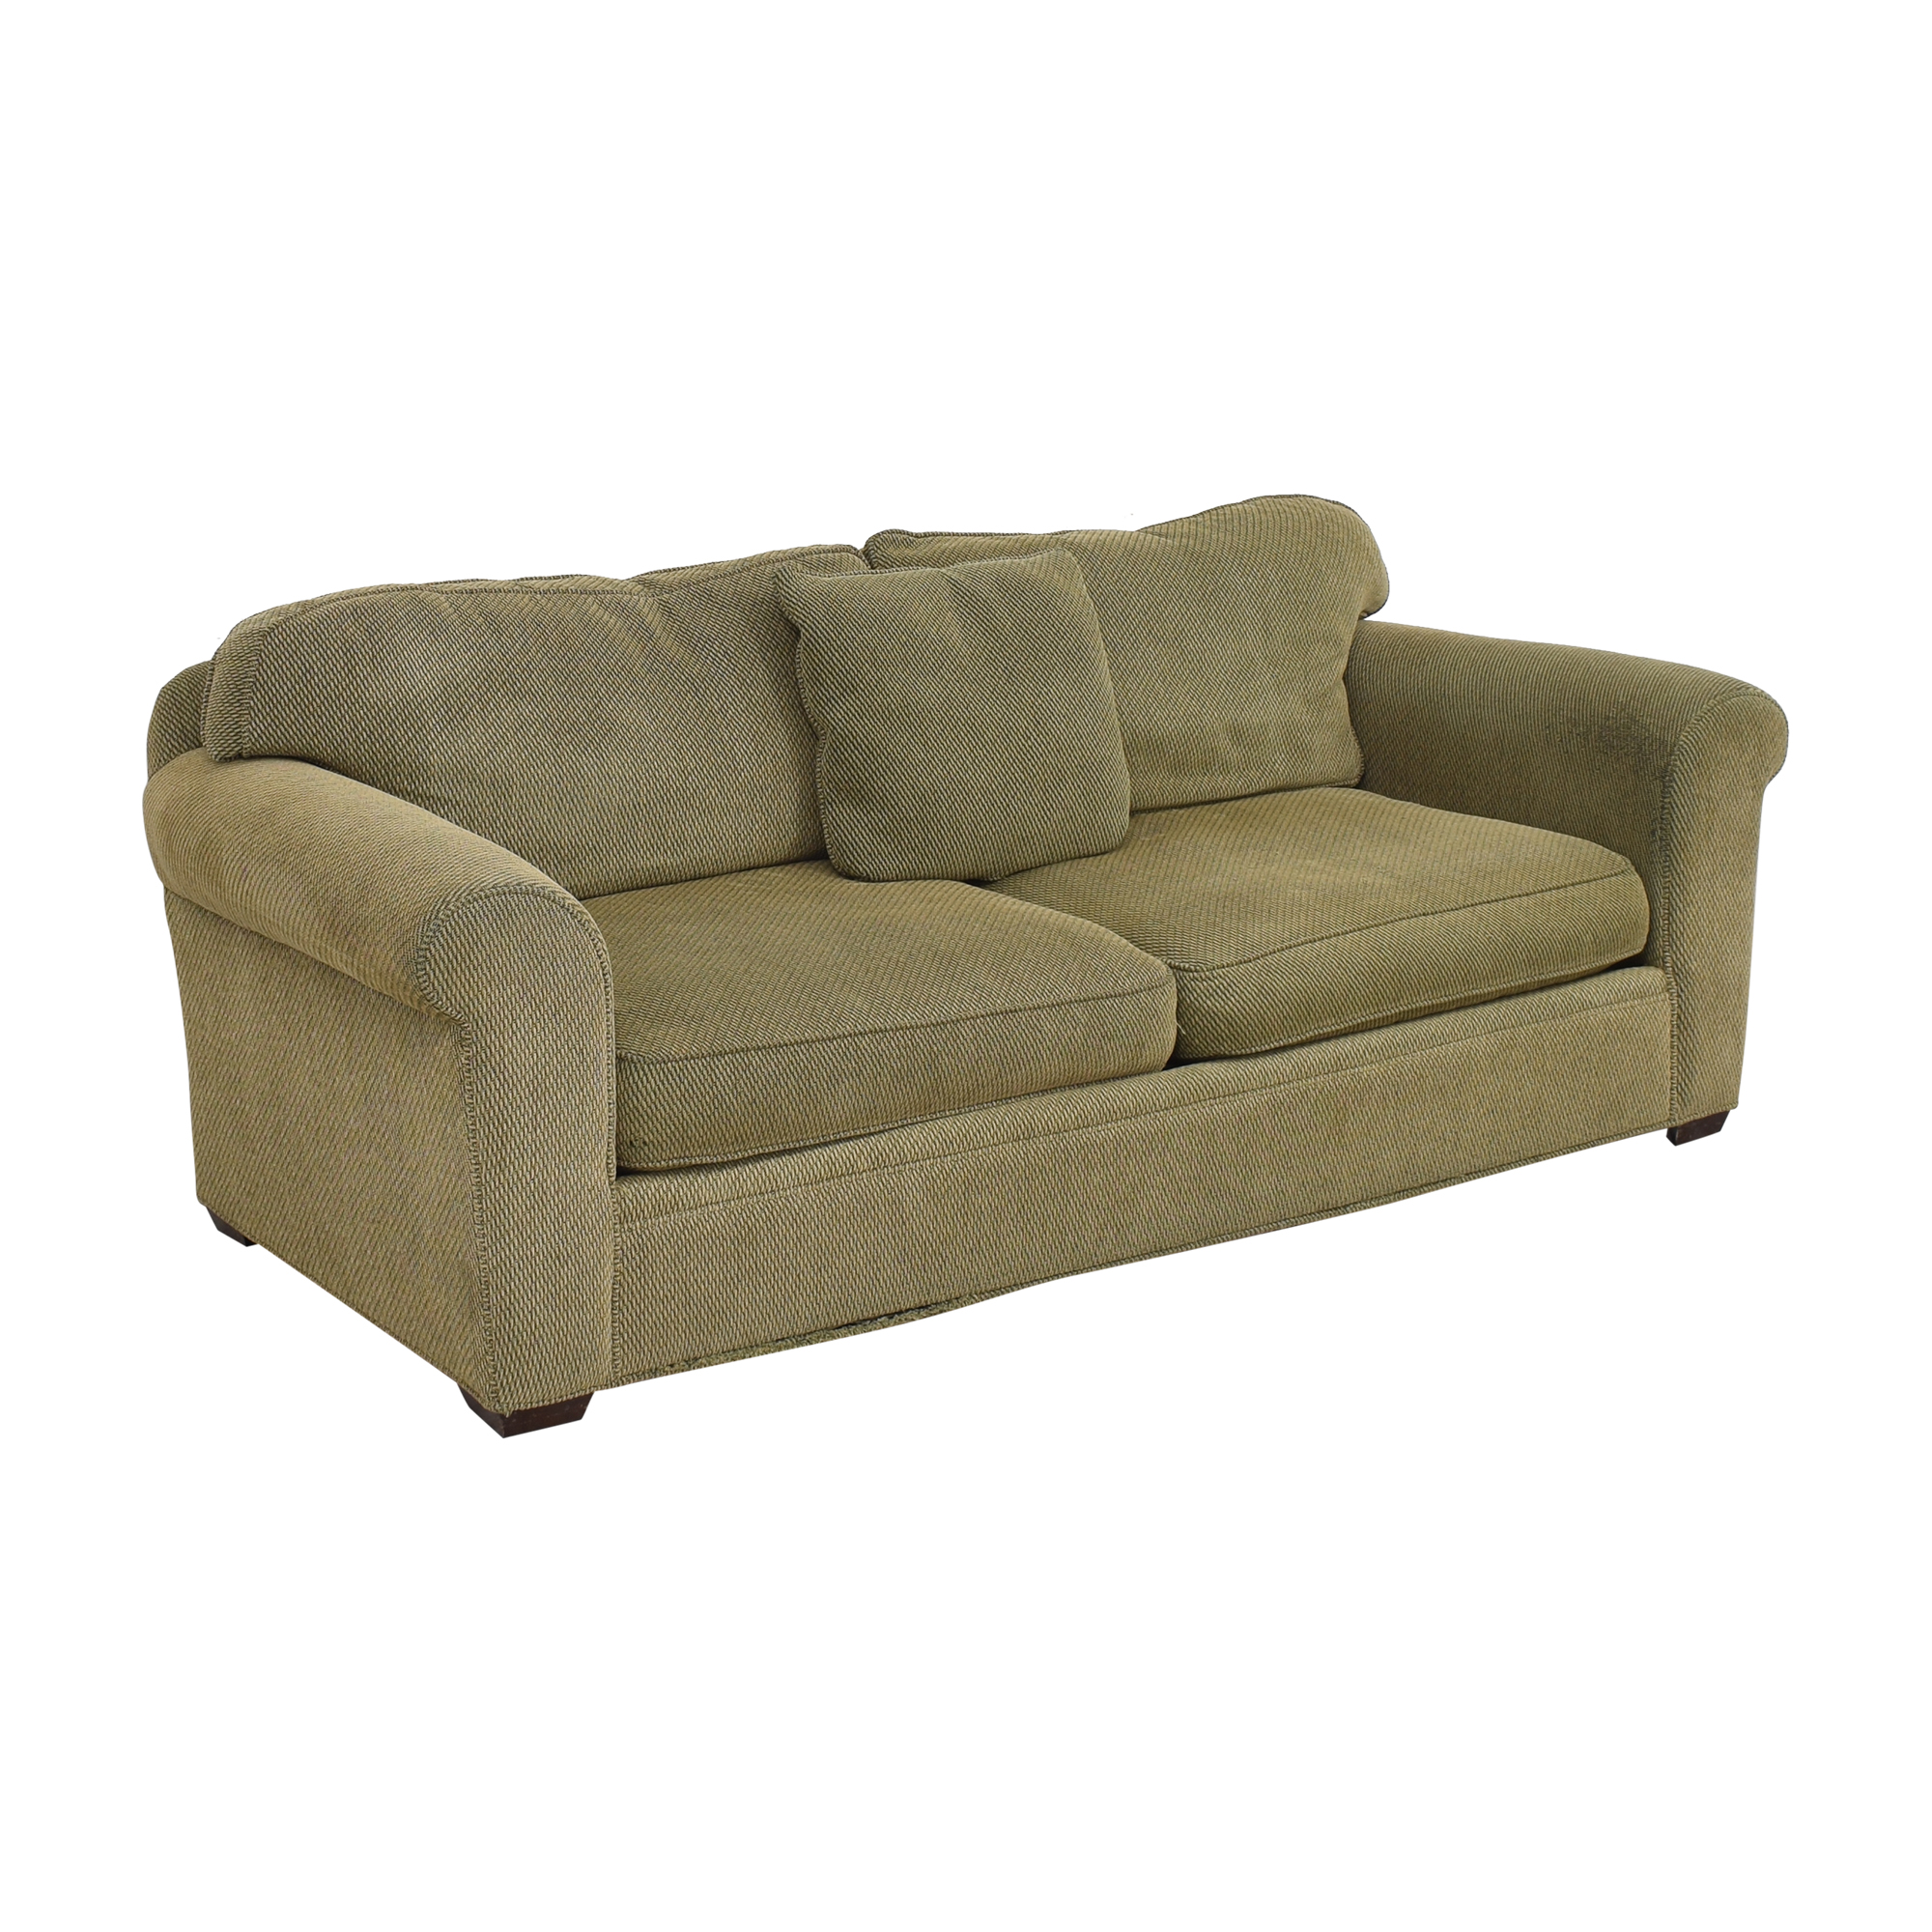 Crate & Barrel Two Cushion Sofa / Sofas